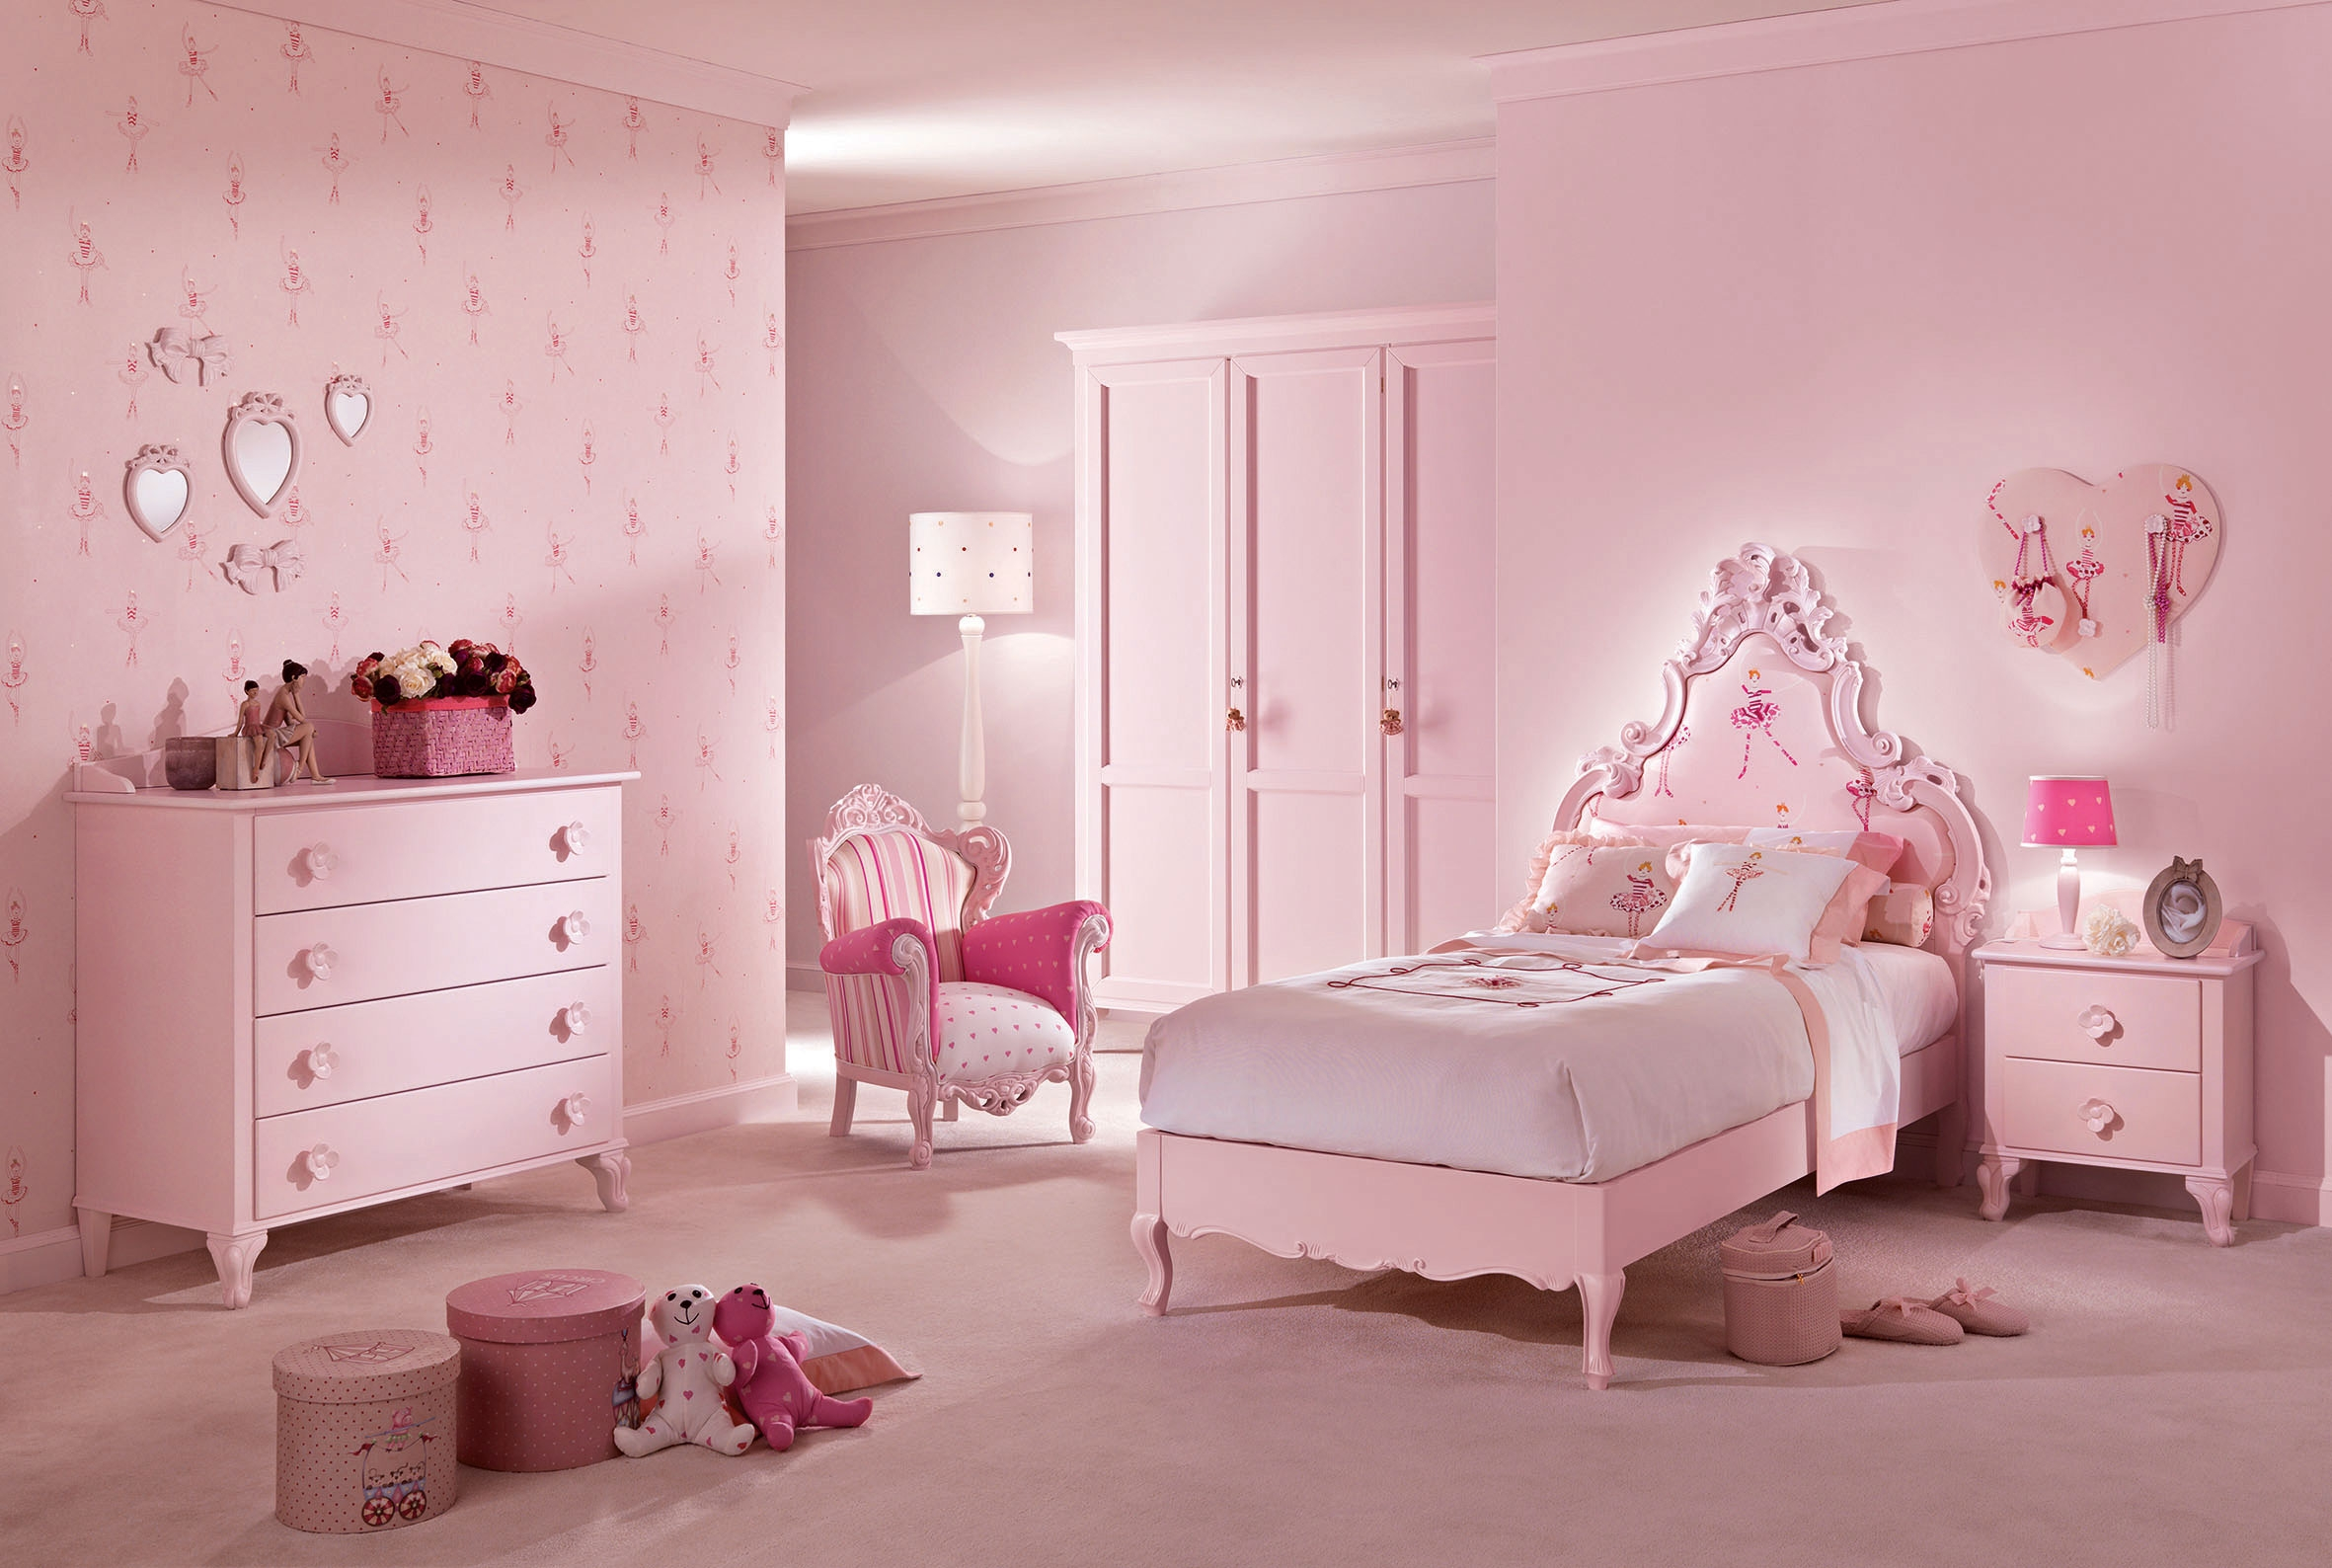 lit princesse personne chambre ccile piermaria with chambre petite fille princesse. Black Bedroom Furniture Sets. Home Design Ideas